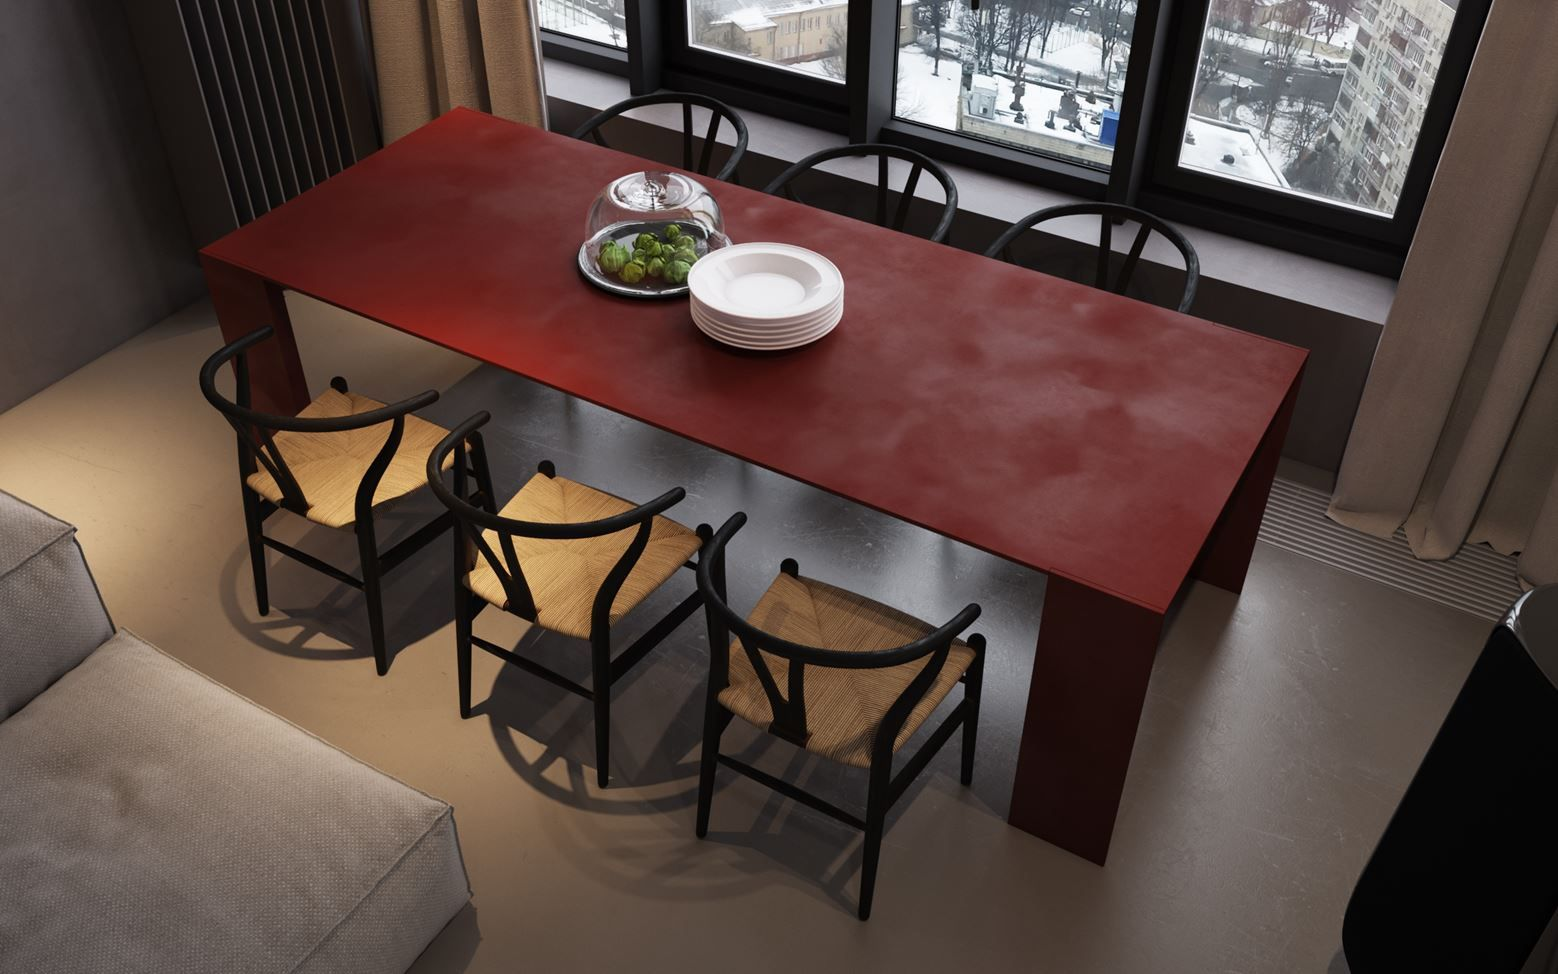 Antique Red Metallico Table By Piero Lissoni For Porro. Built Entirely Of  Solid Plates Of Aluminum With A Baked, Brushed, Buffed And Waxed Paint  Finish.